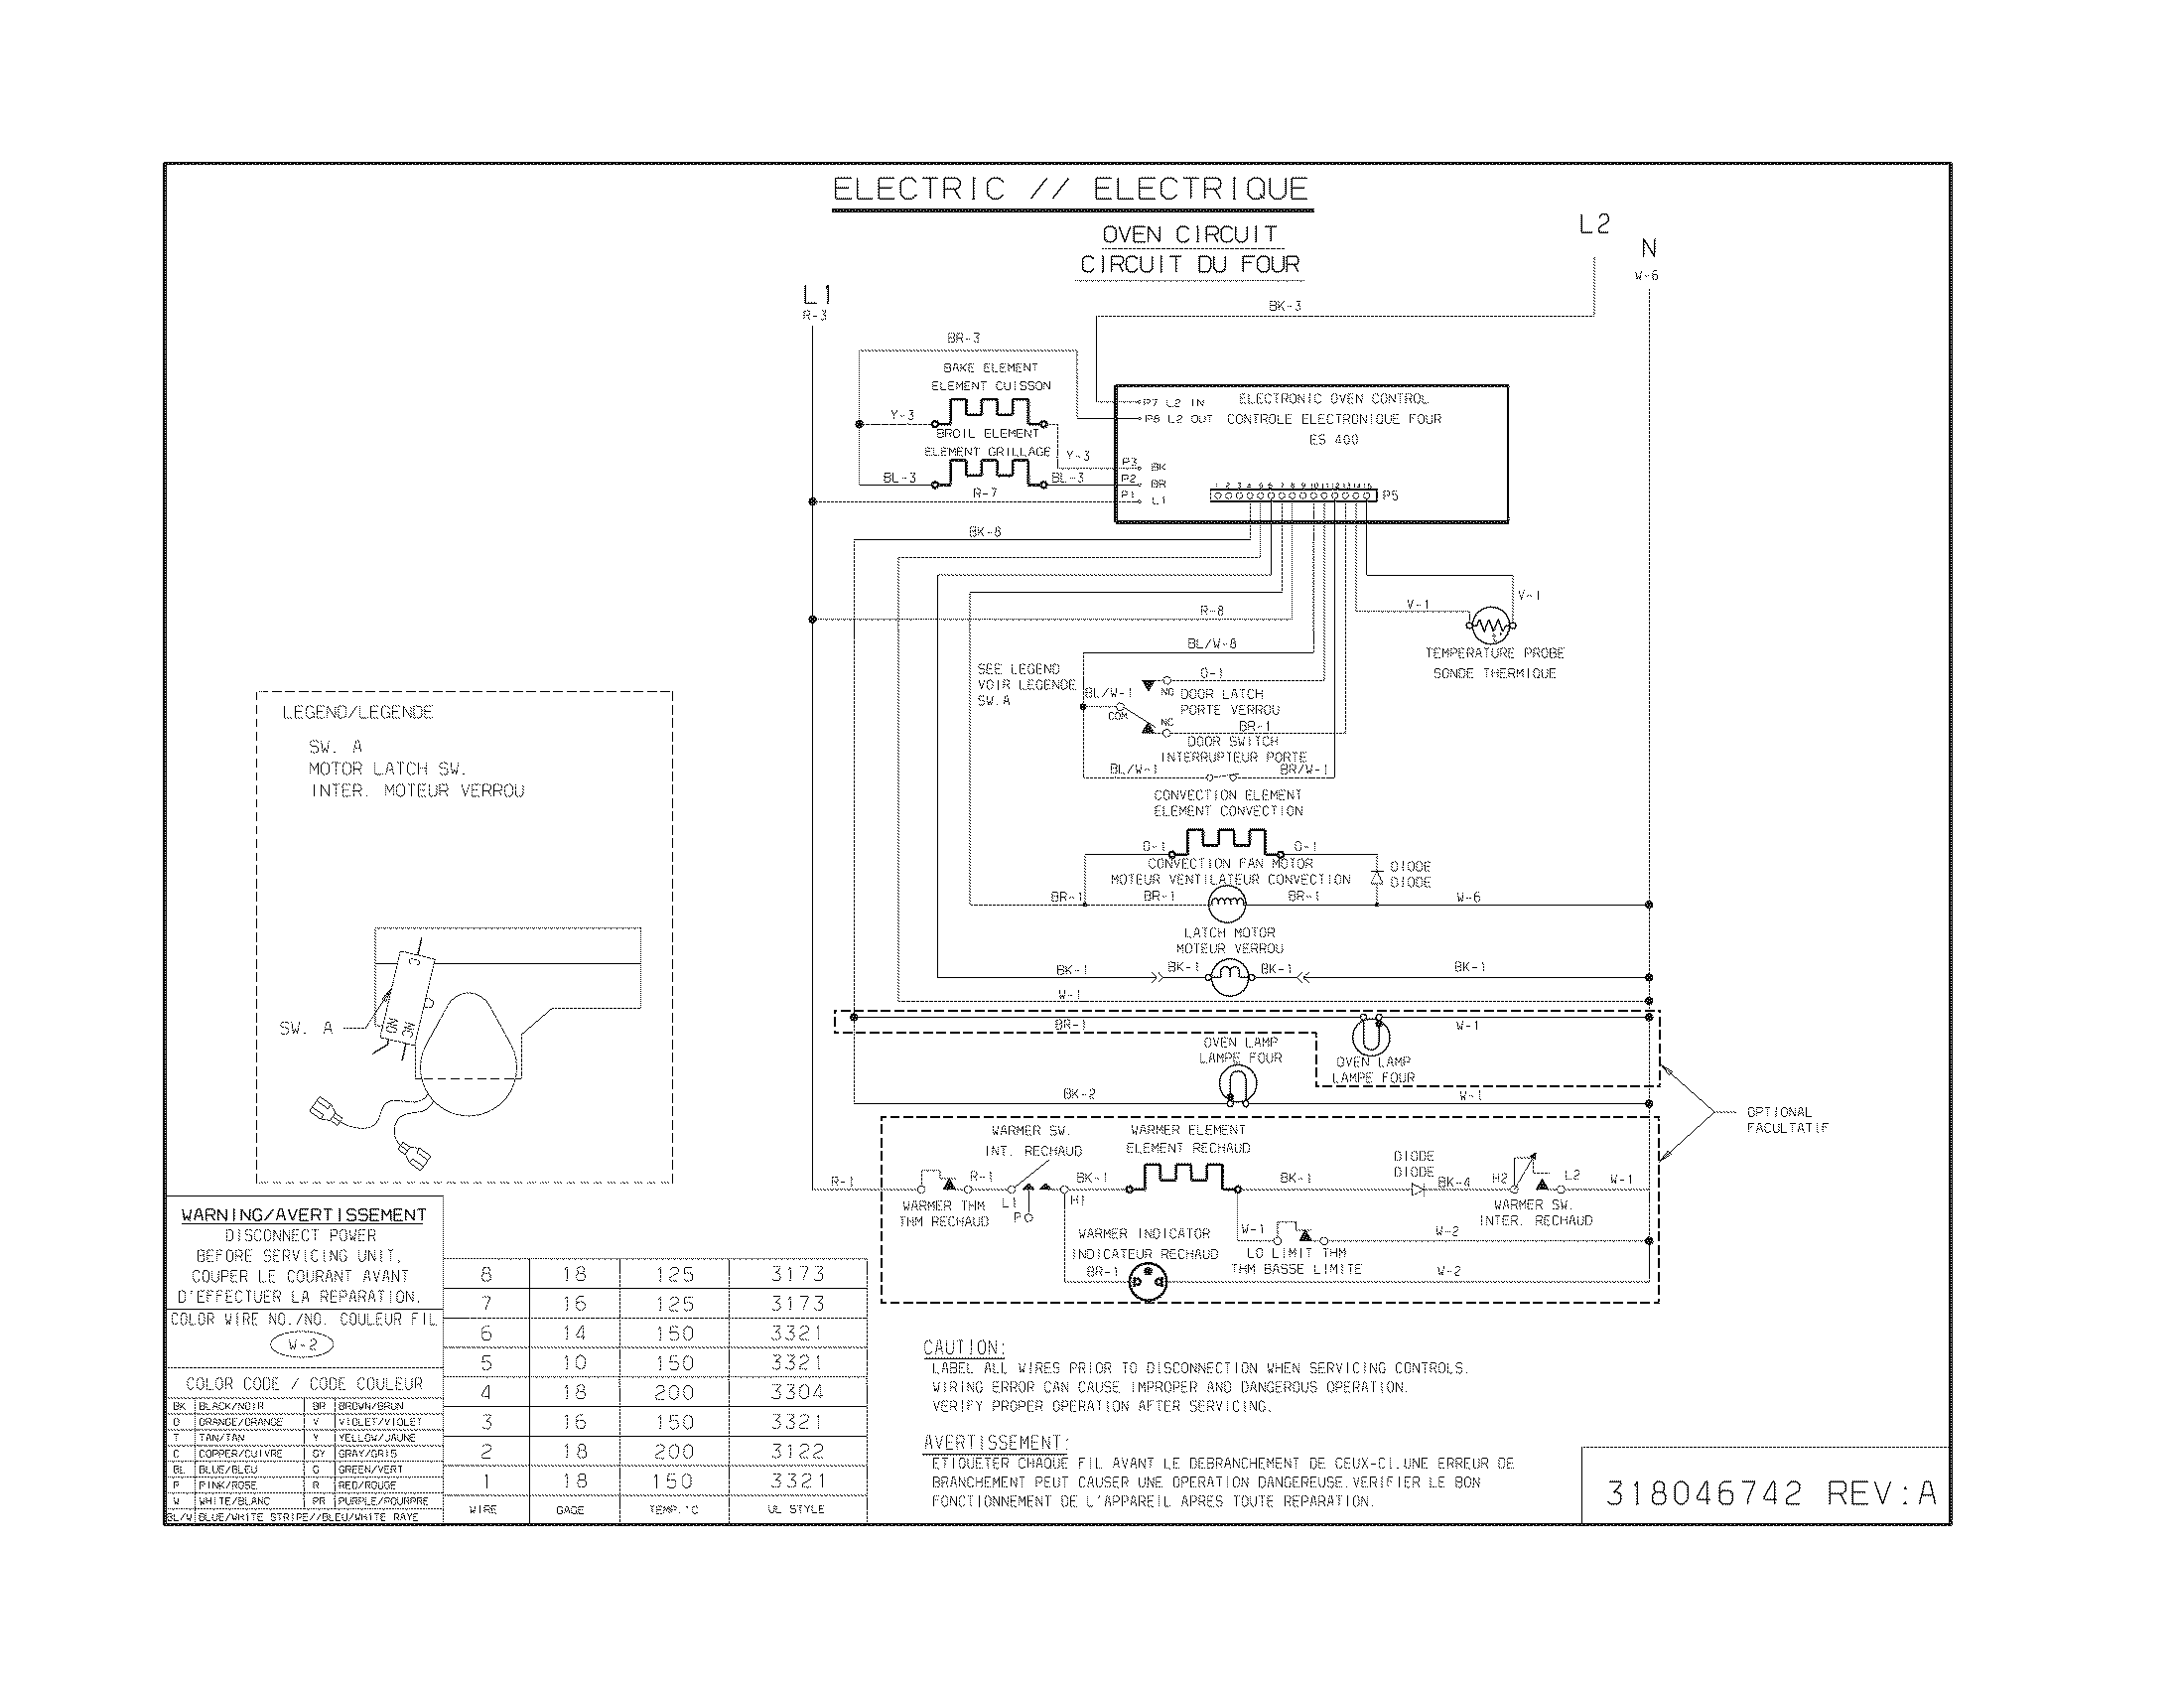 wiring diagram parts?resize=665%2C514&ssl=1 oven wiring instructions wiring diagram  at n-0.co